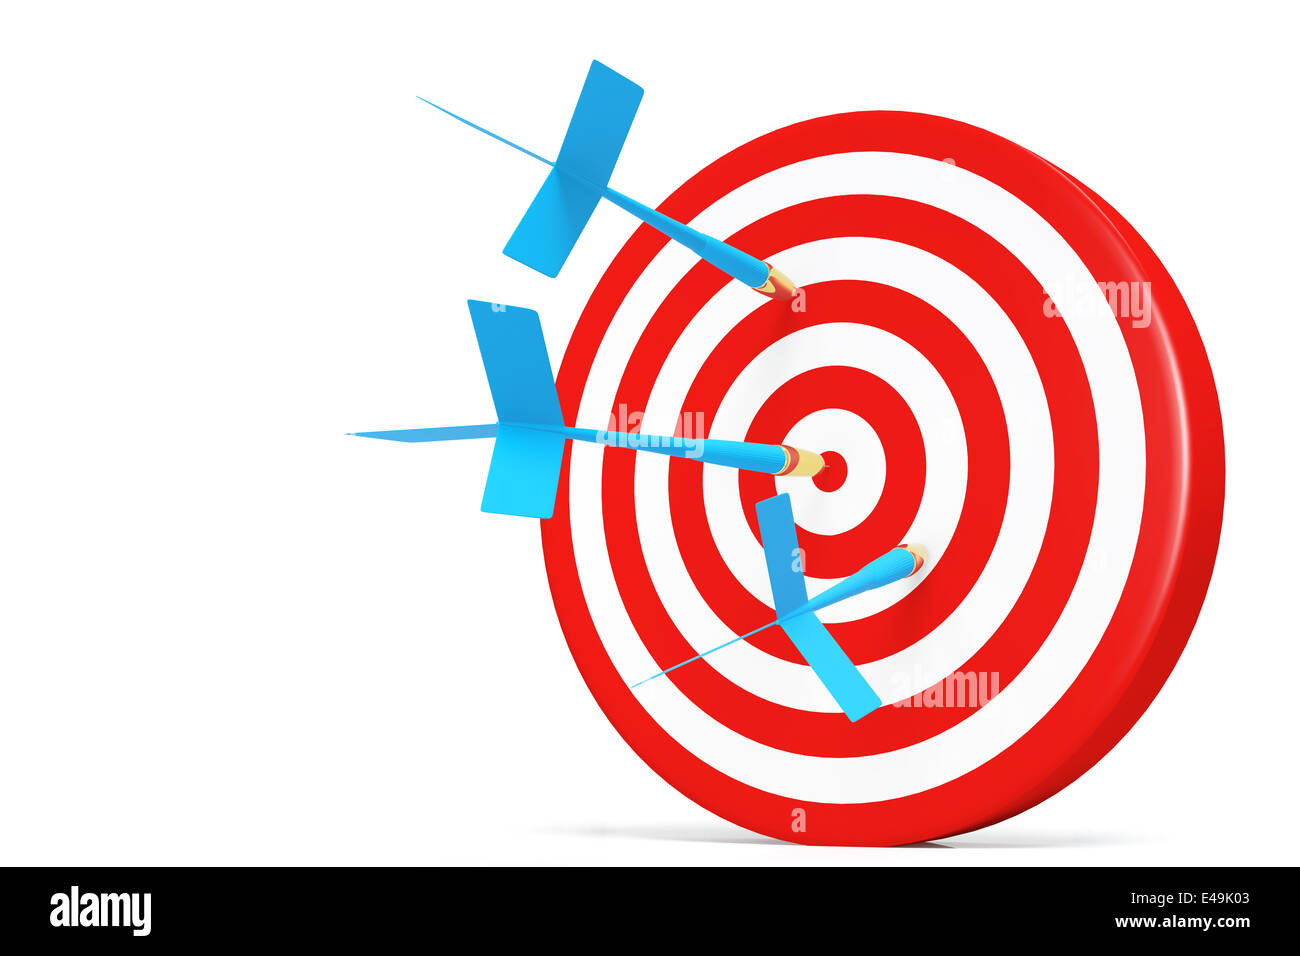 One darts accurate  in the target - Stock Image